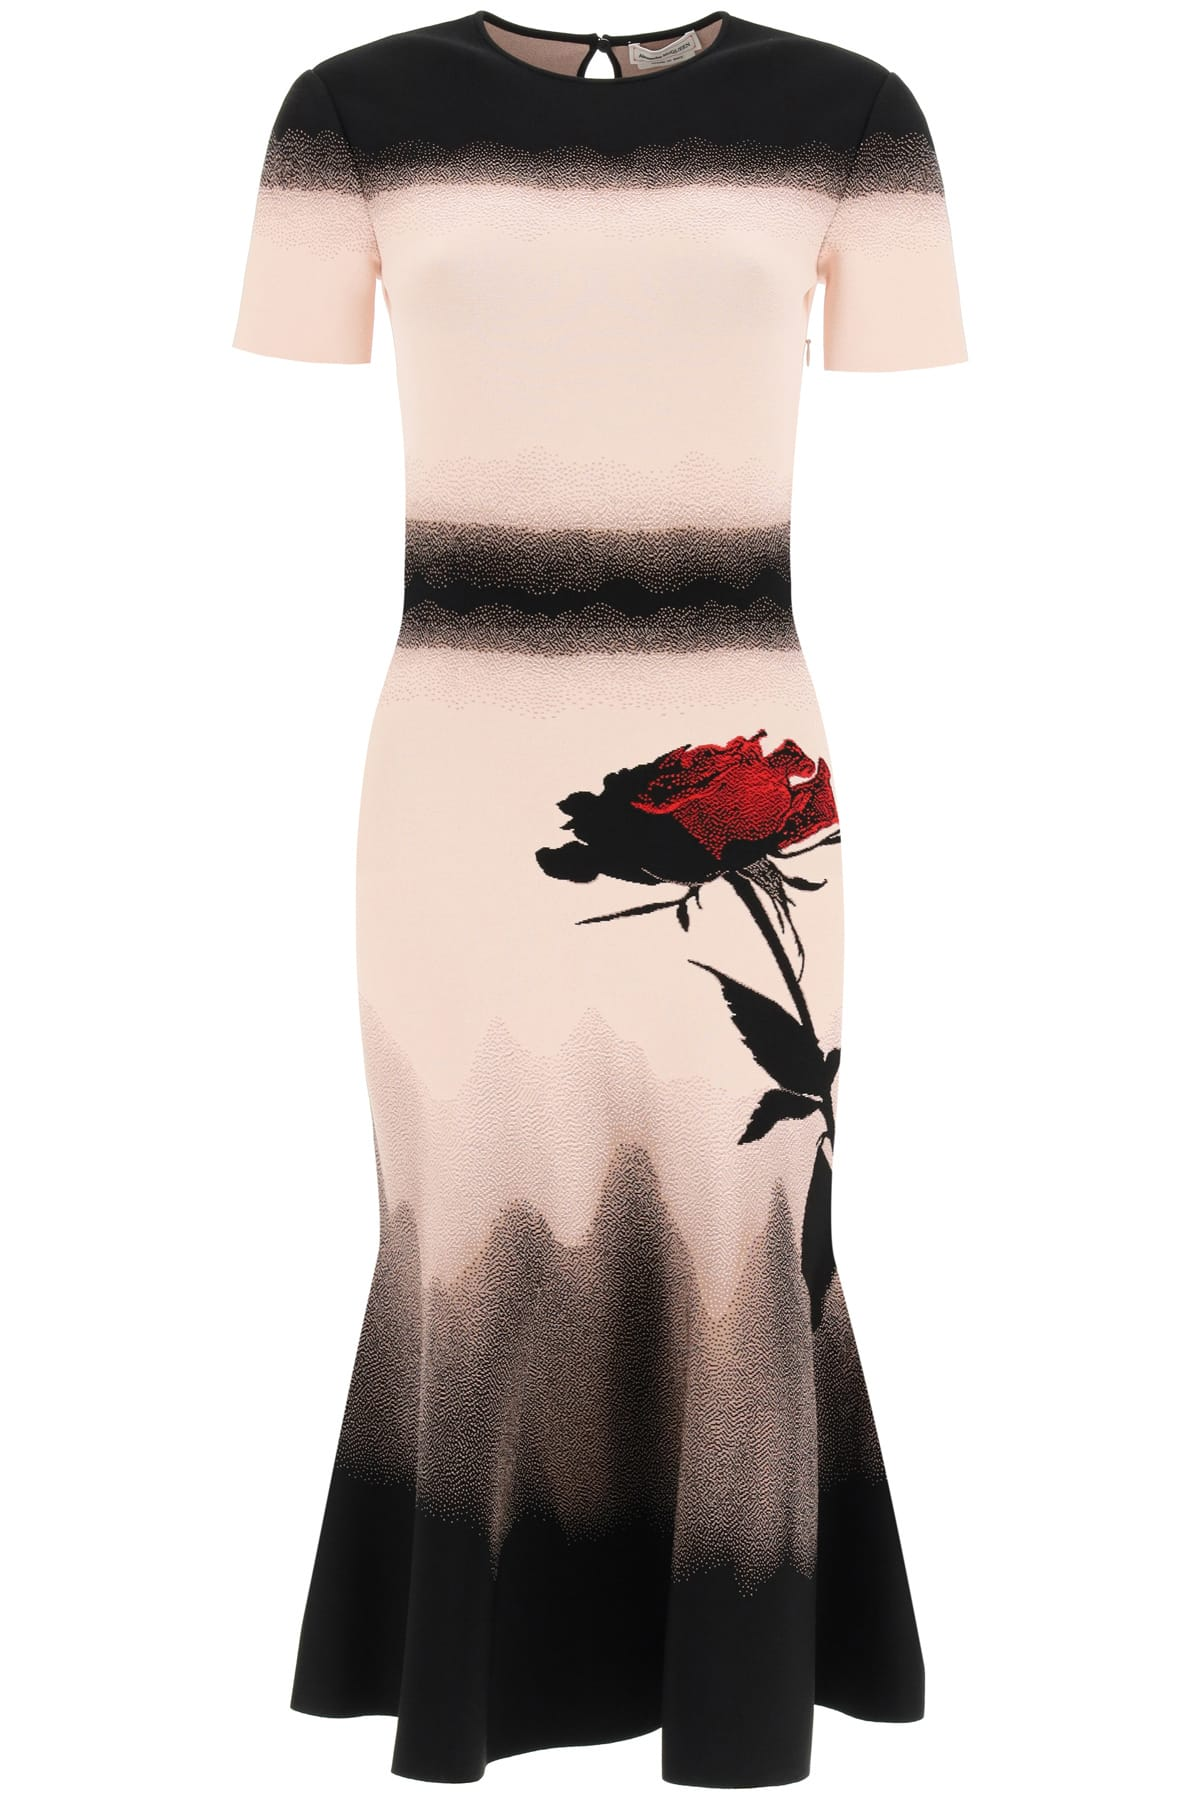 ALEXANDER MCQUEEN KNIT MIDI DRESS WITH ROSE M Pink, Black, Red